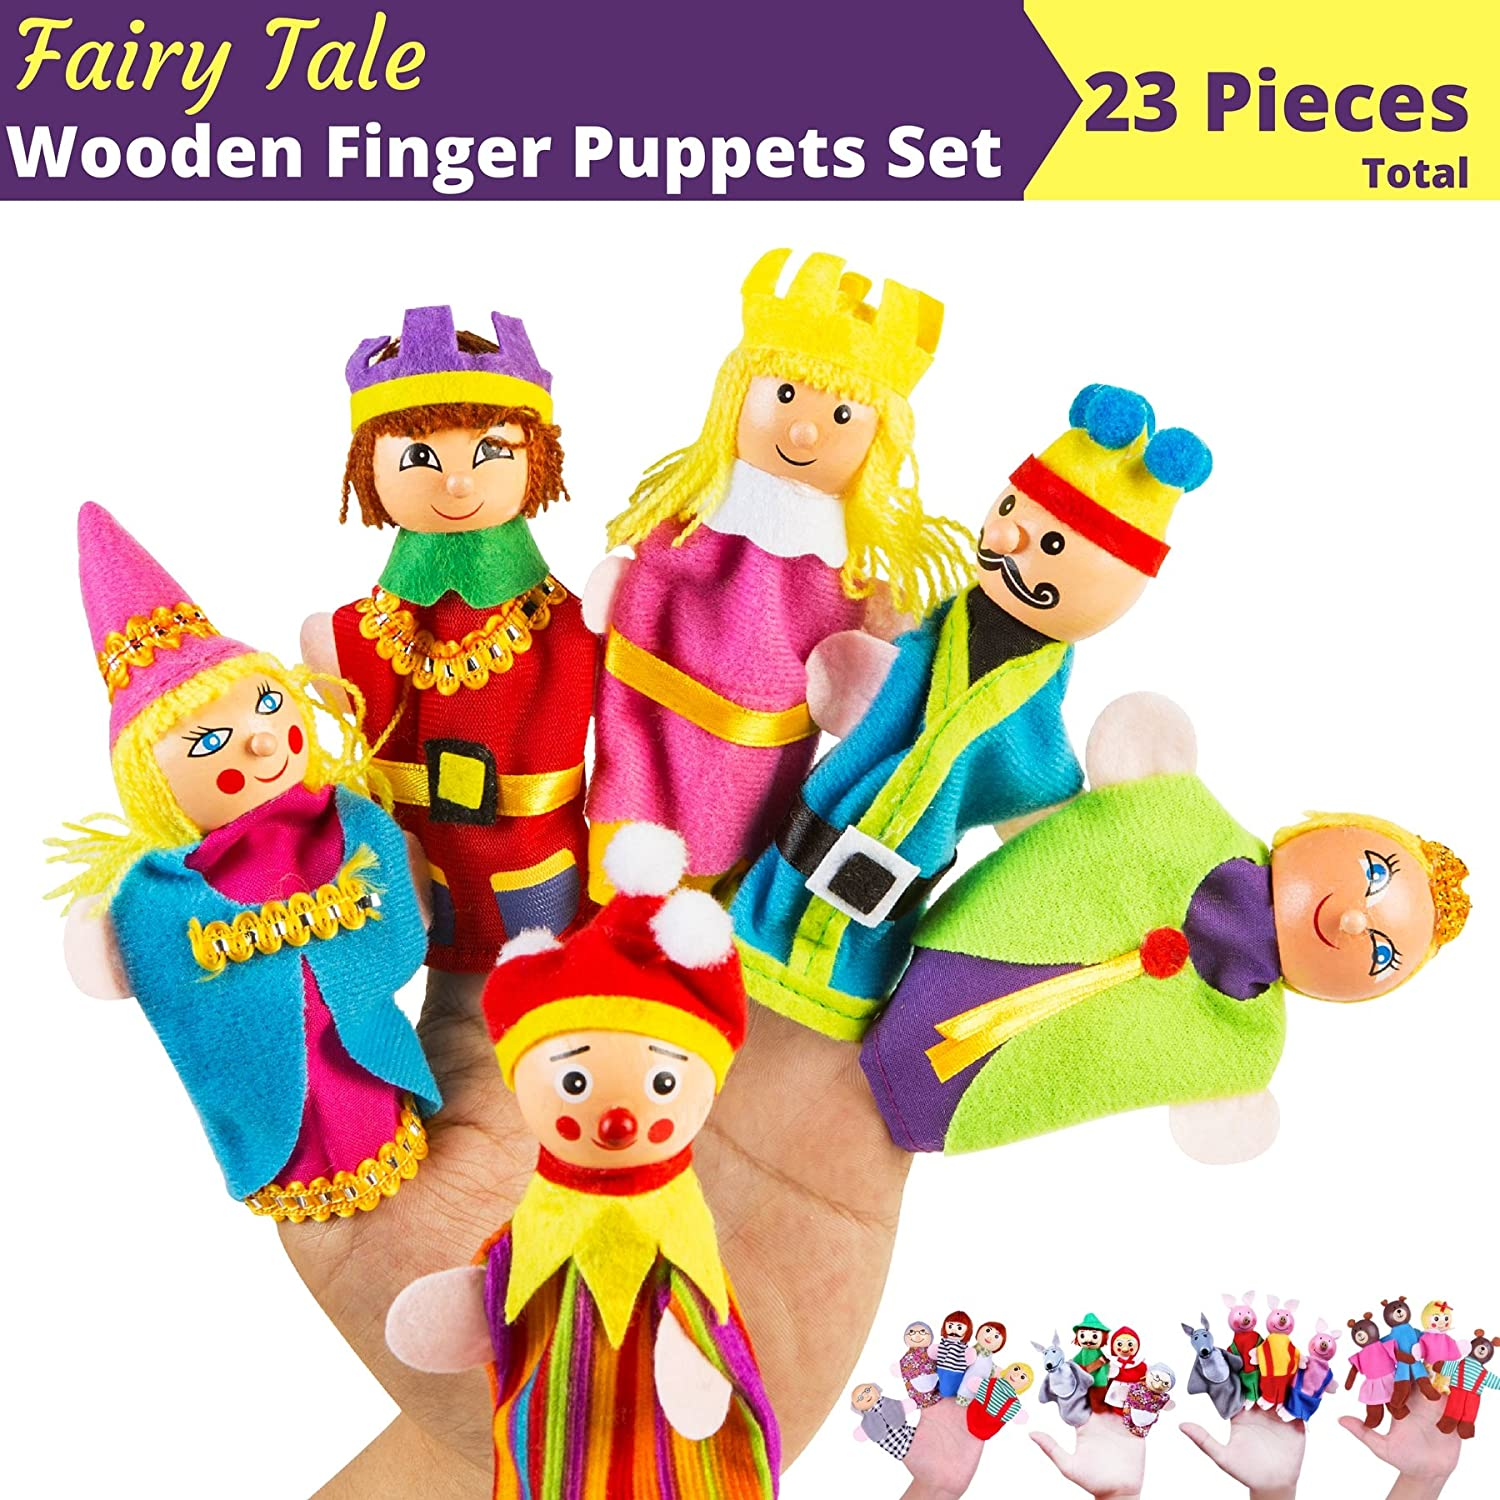 BETTERLINE Premium Wooden Finger Puppets 23-Piece Set / Fairy Tale & Nursery Rhymes Characters - Red Riding Hood, 3 Little Pigs, Goldilocks & the 3 Bears, Family and Kingdom Better Line ®